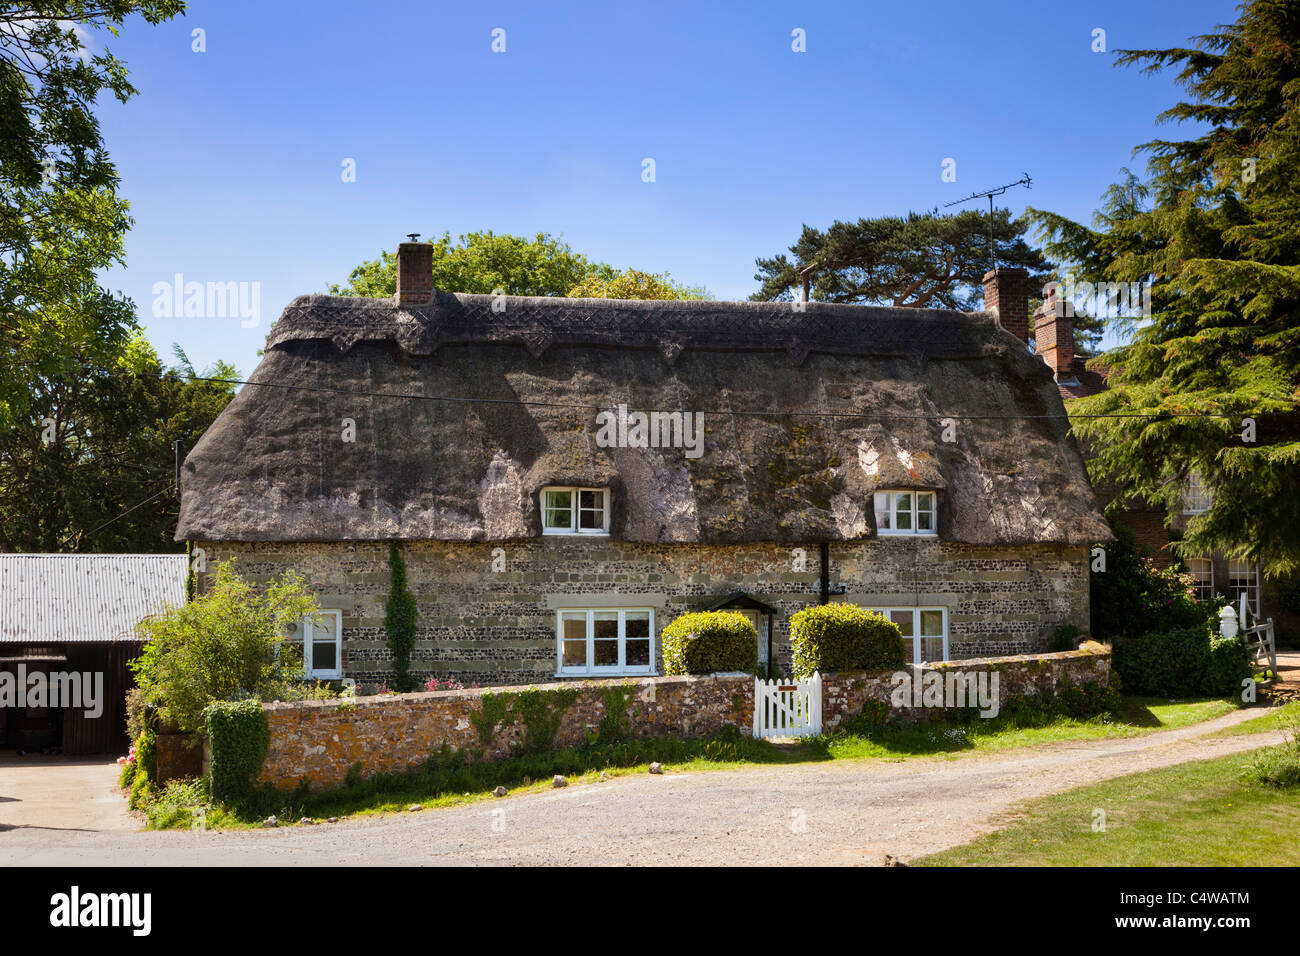 Beautiful tradition old country house on a sunny summer's day in the quaint village of Ashmore, Dorset, England, - Stock Image